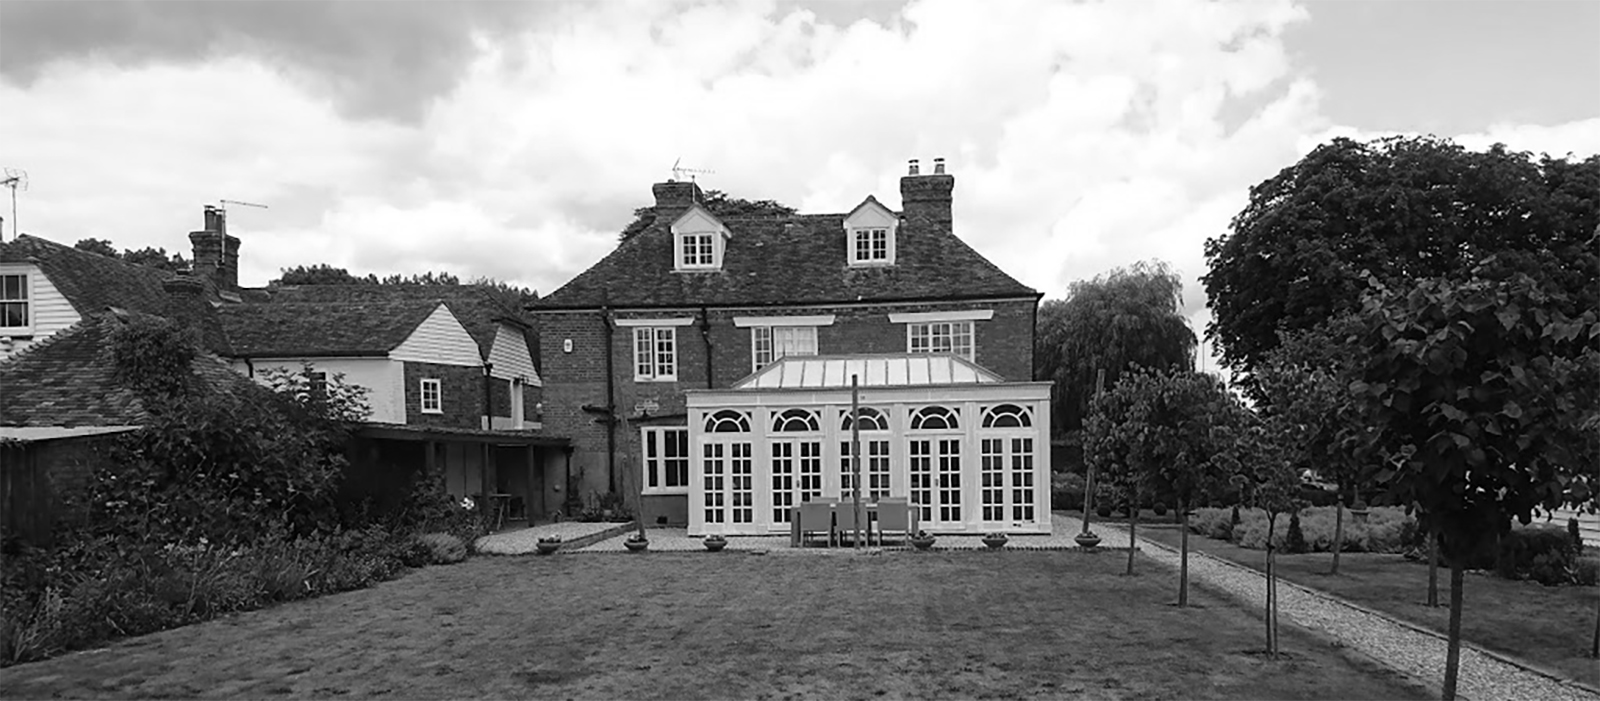 gyd-architecture | the old orangery